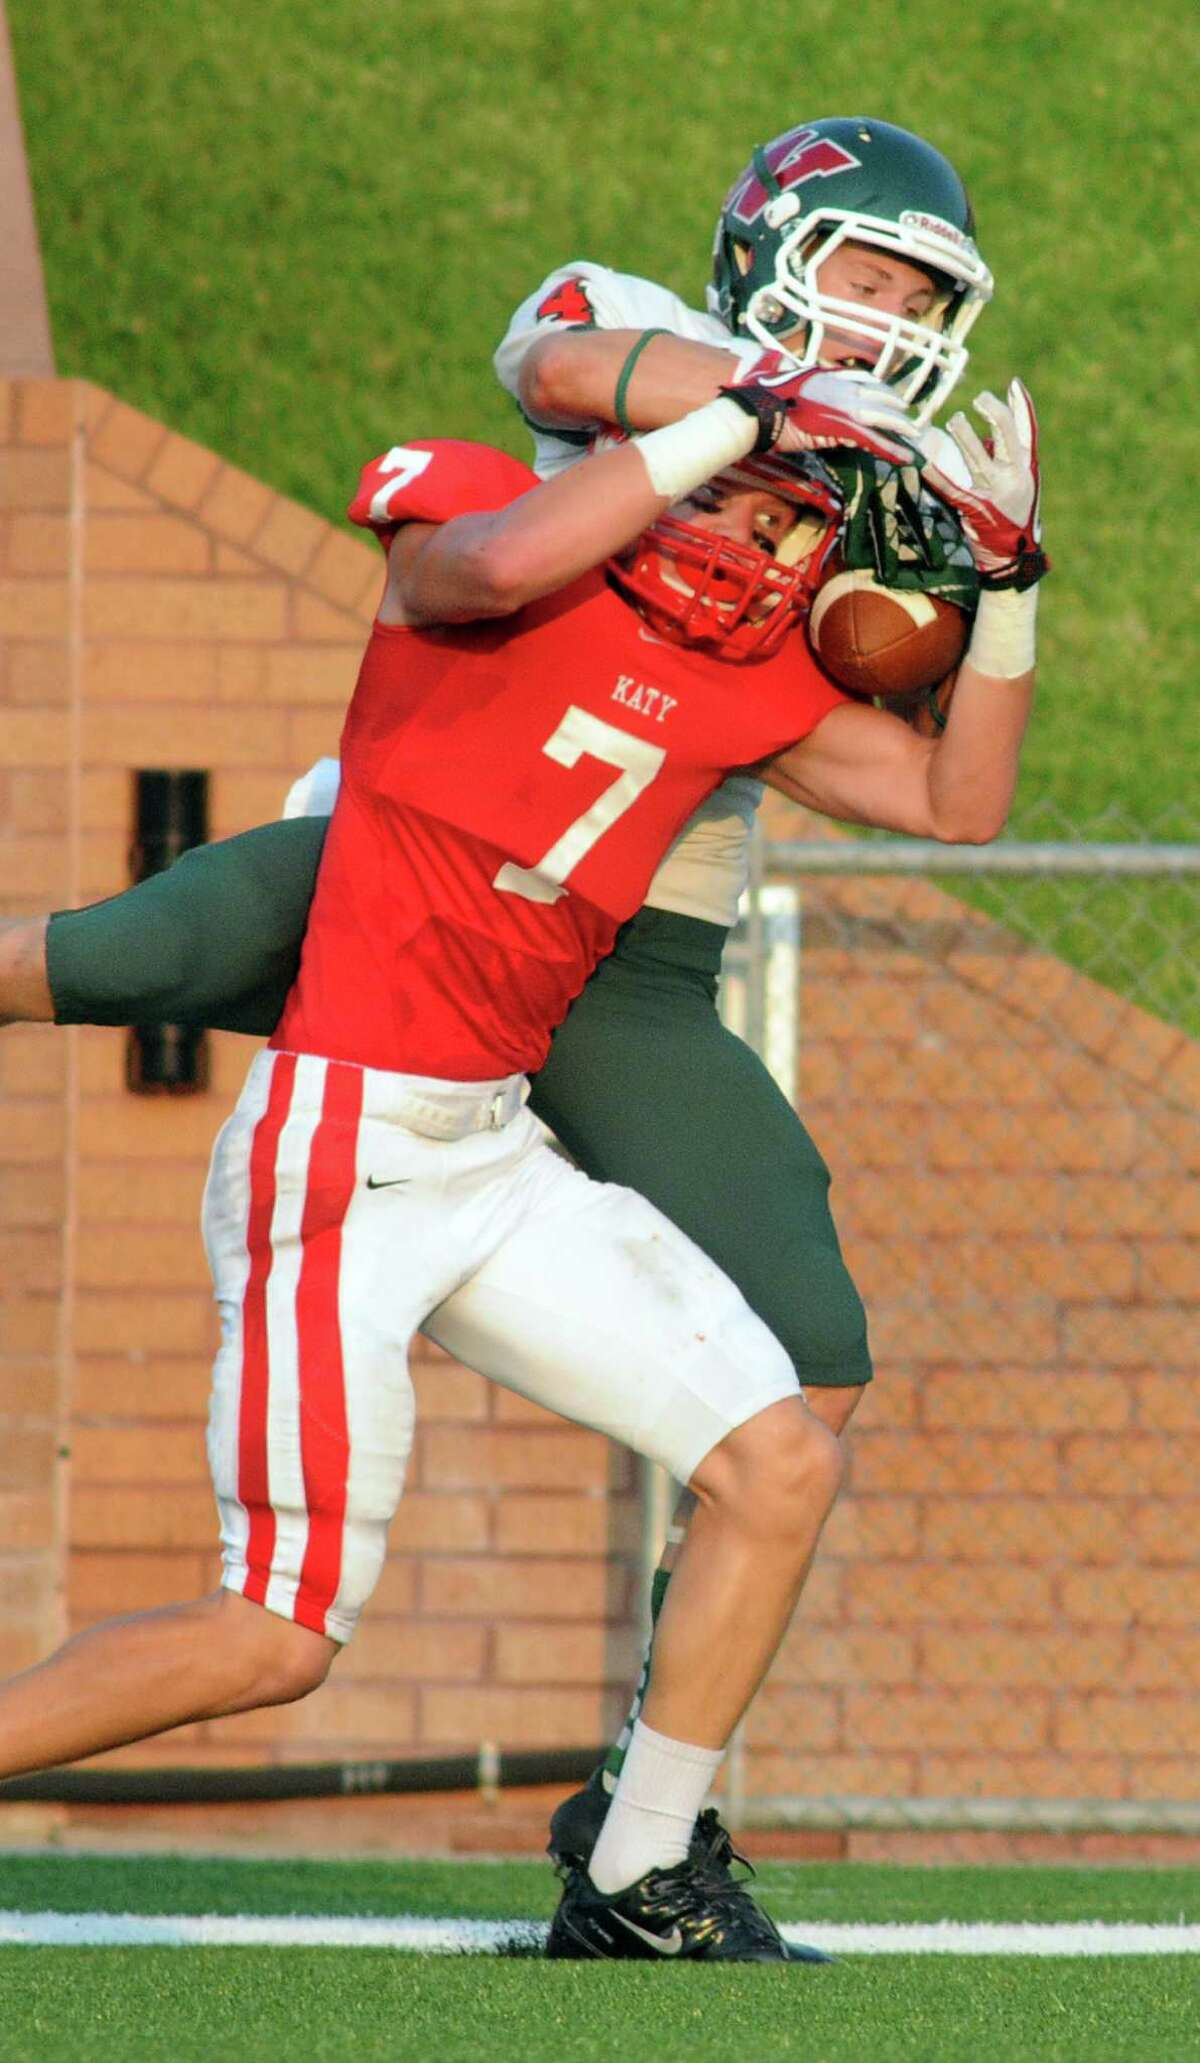 The Woodlands senior wide receiver Tyler Patrick, top, battles for possession of a deep pass with Katy junior defensive back Sy Slater during second action of their non-district matchup at Rhodes Stadium on Saturday.